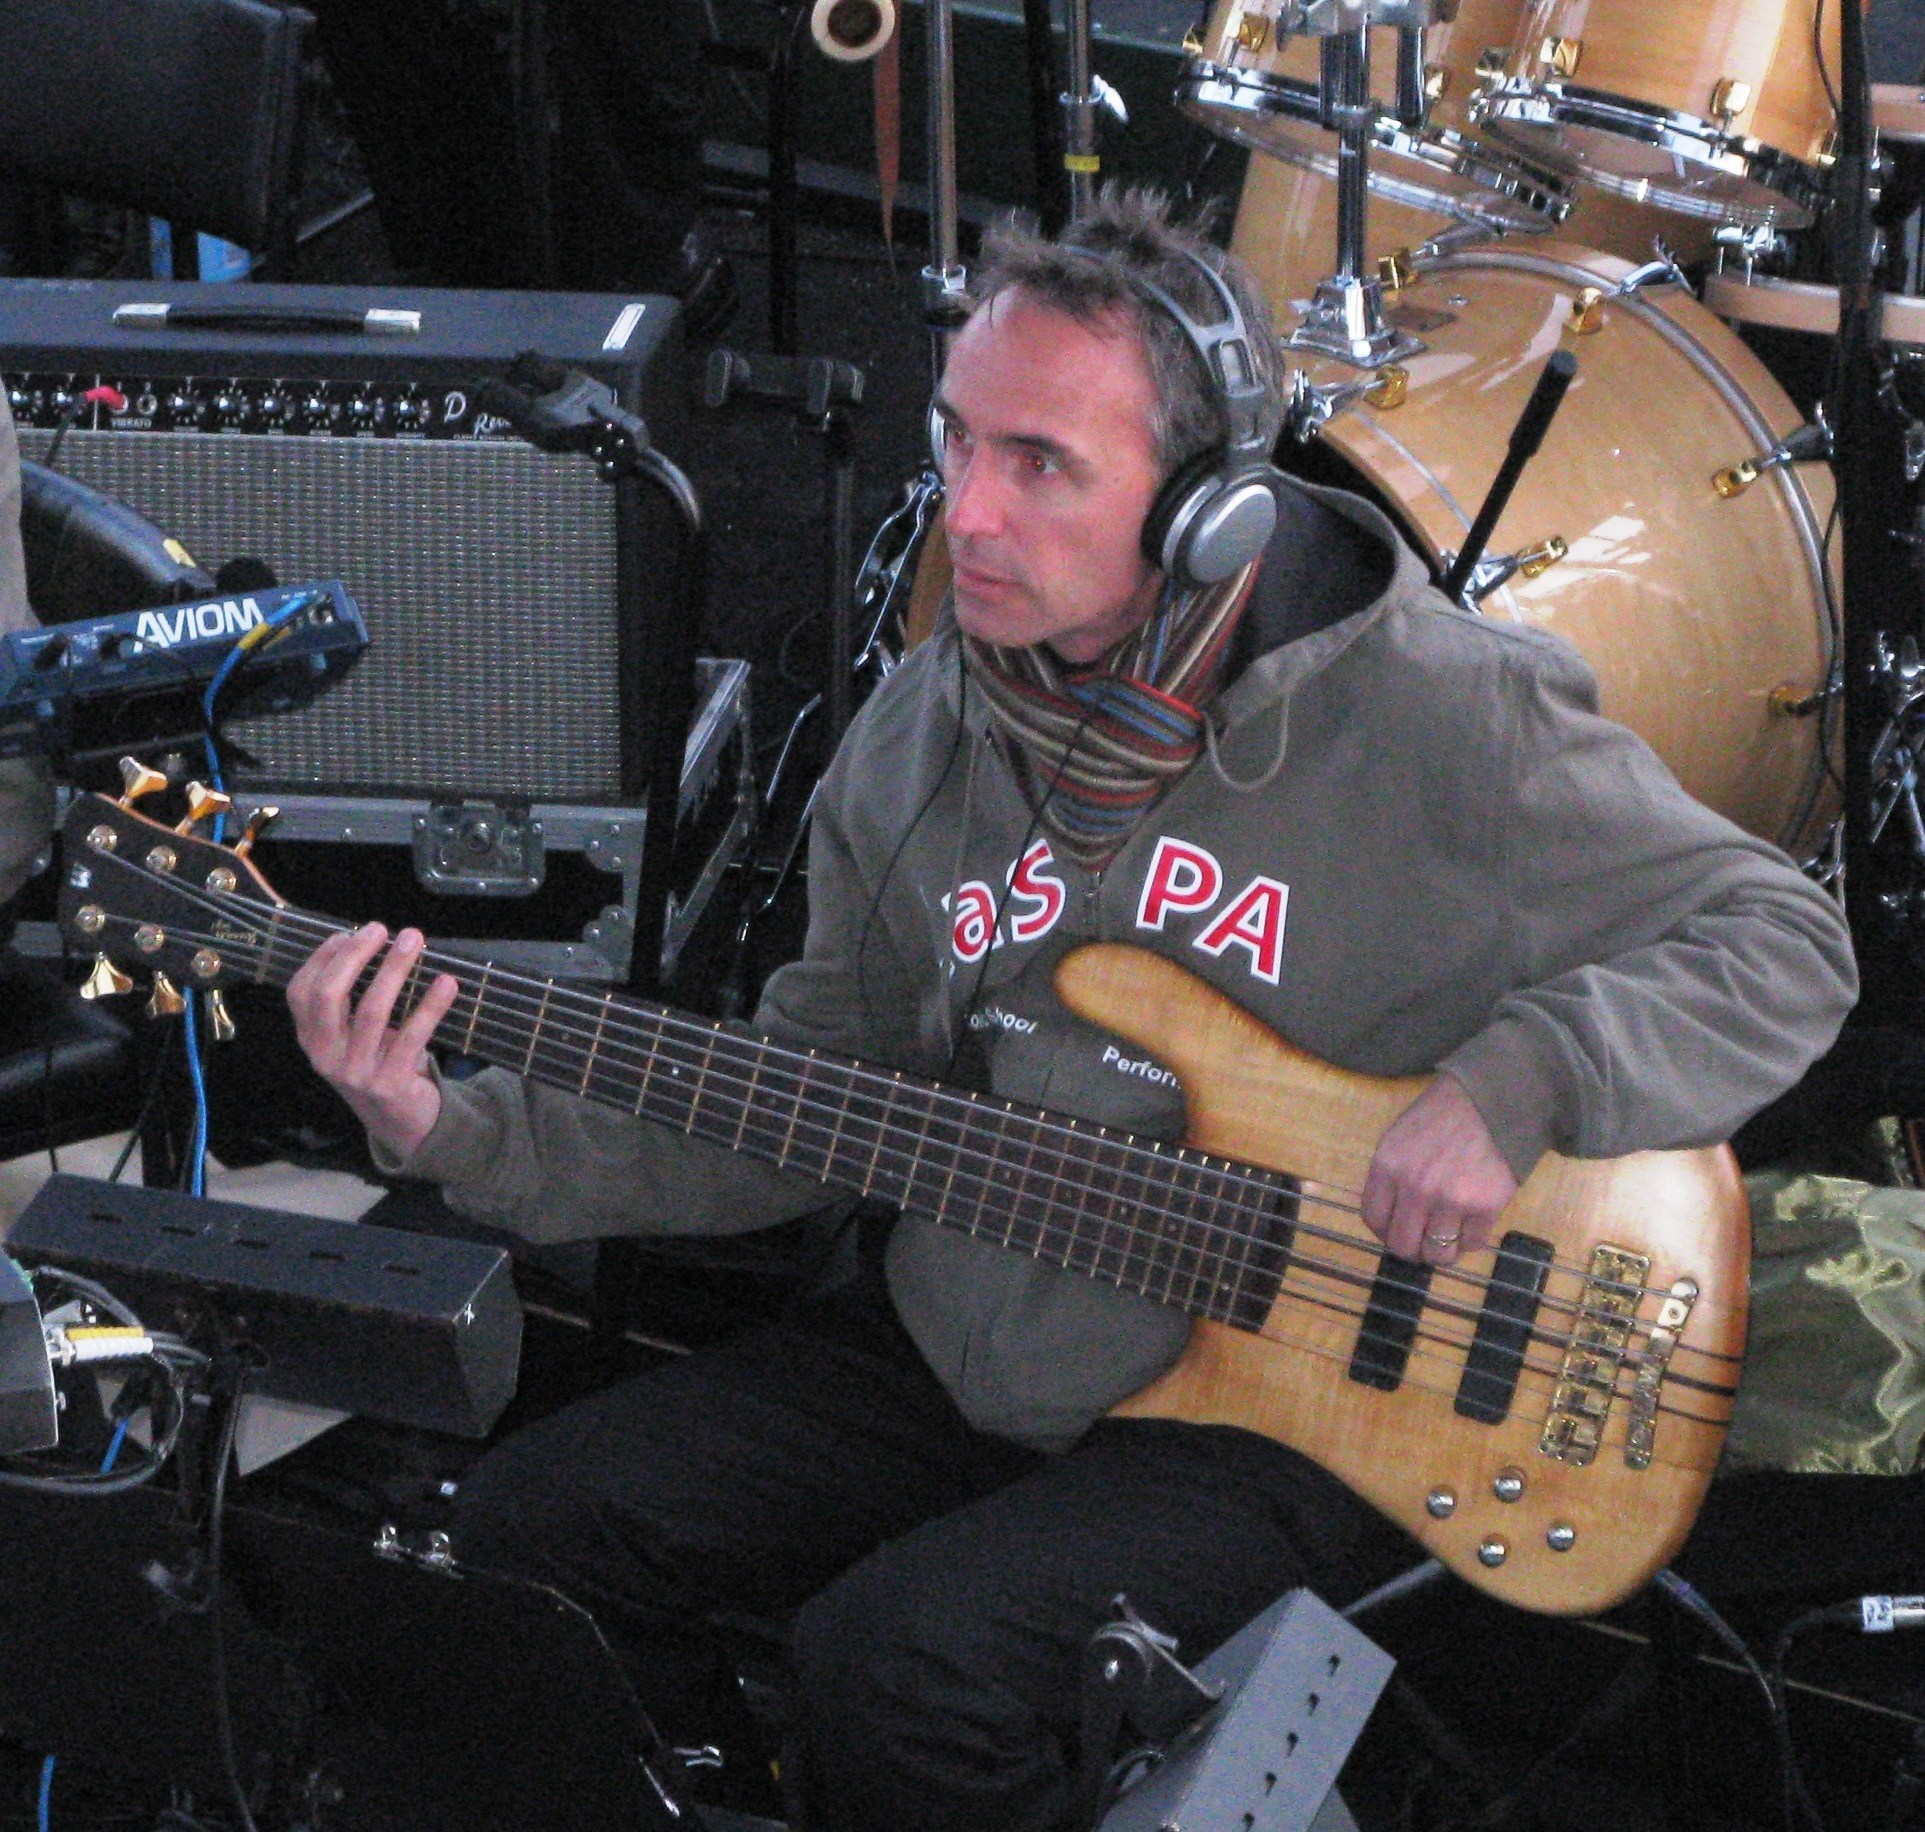 Warwick Bass at World Youth Day 2008